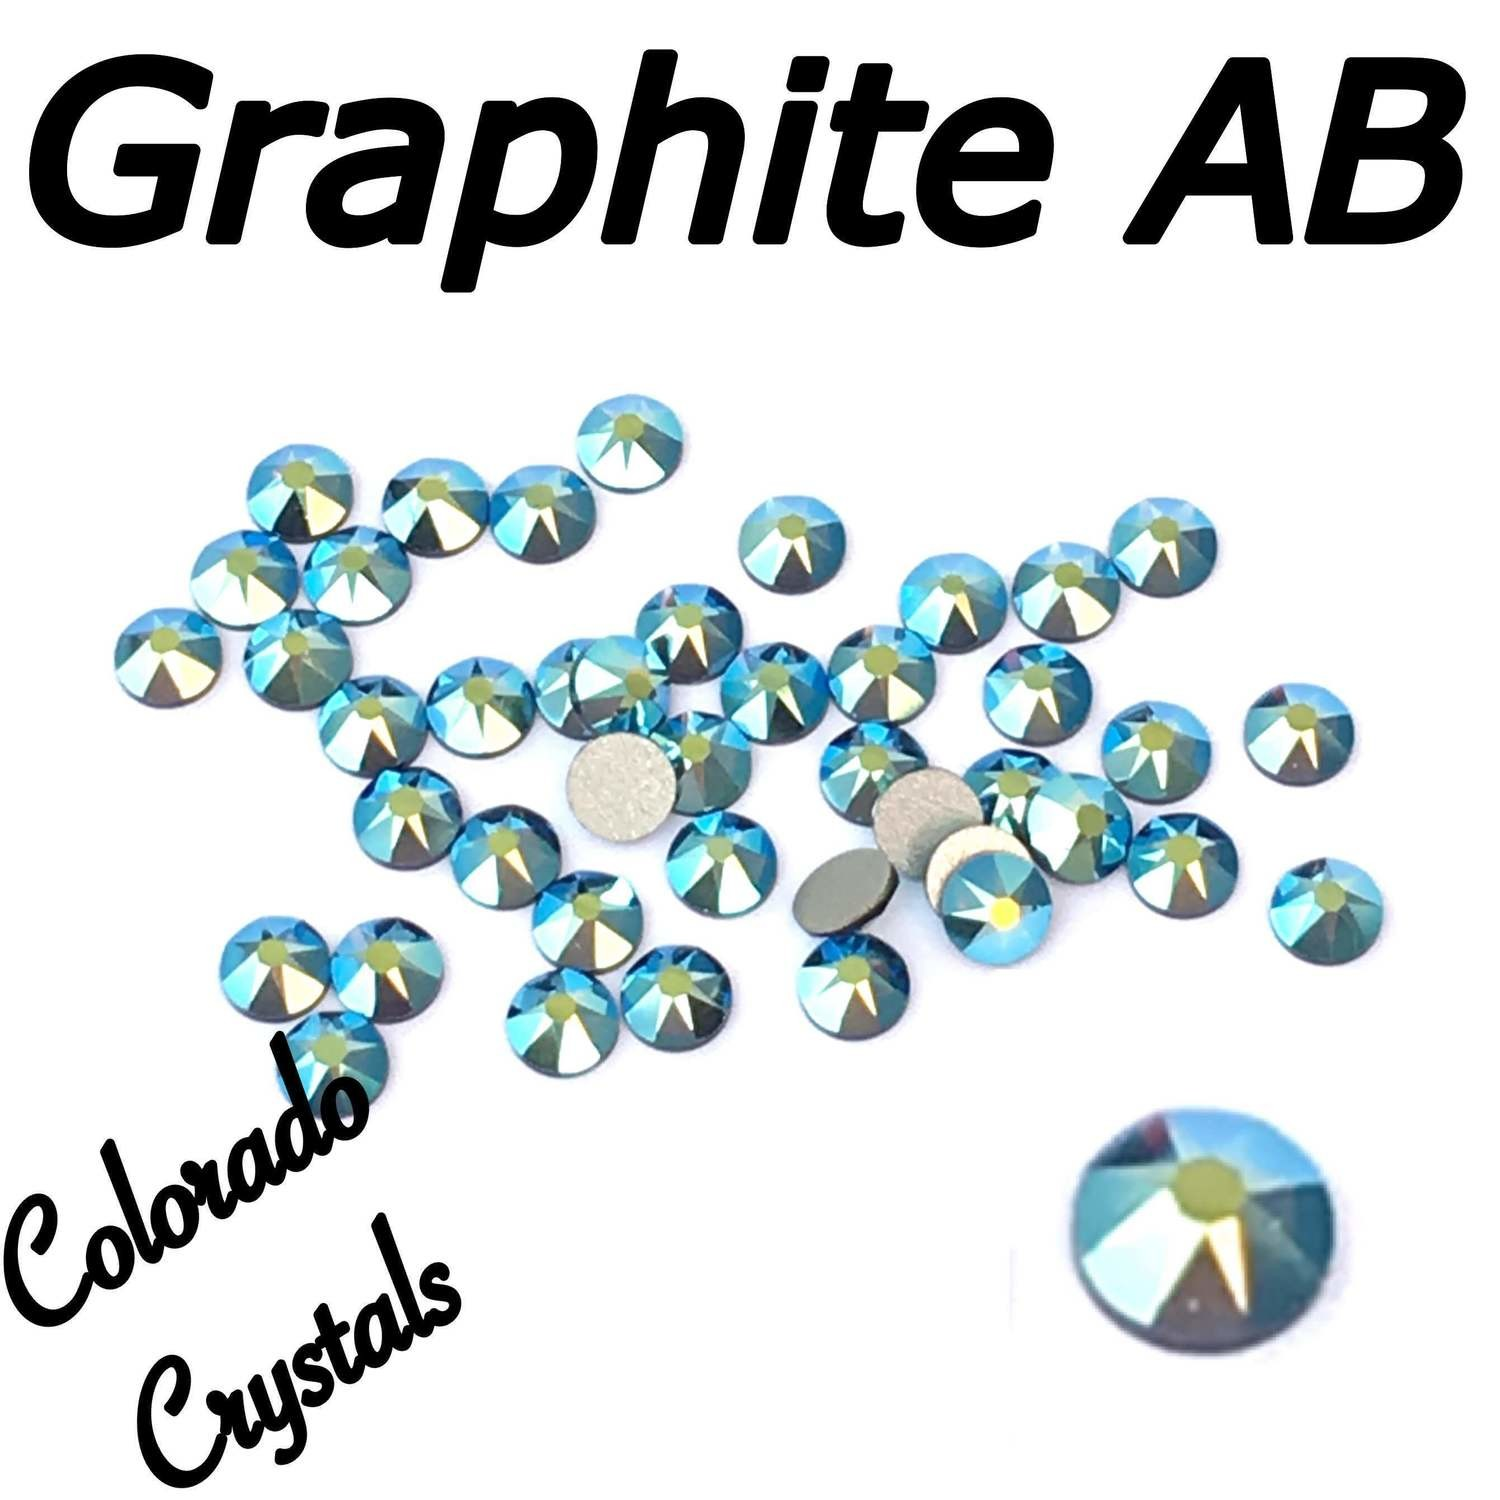 Graphite AB 20ss 2088 Limited Special Production Swarovski